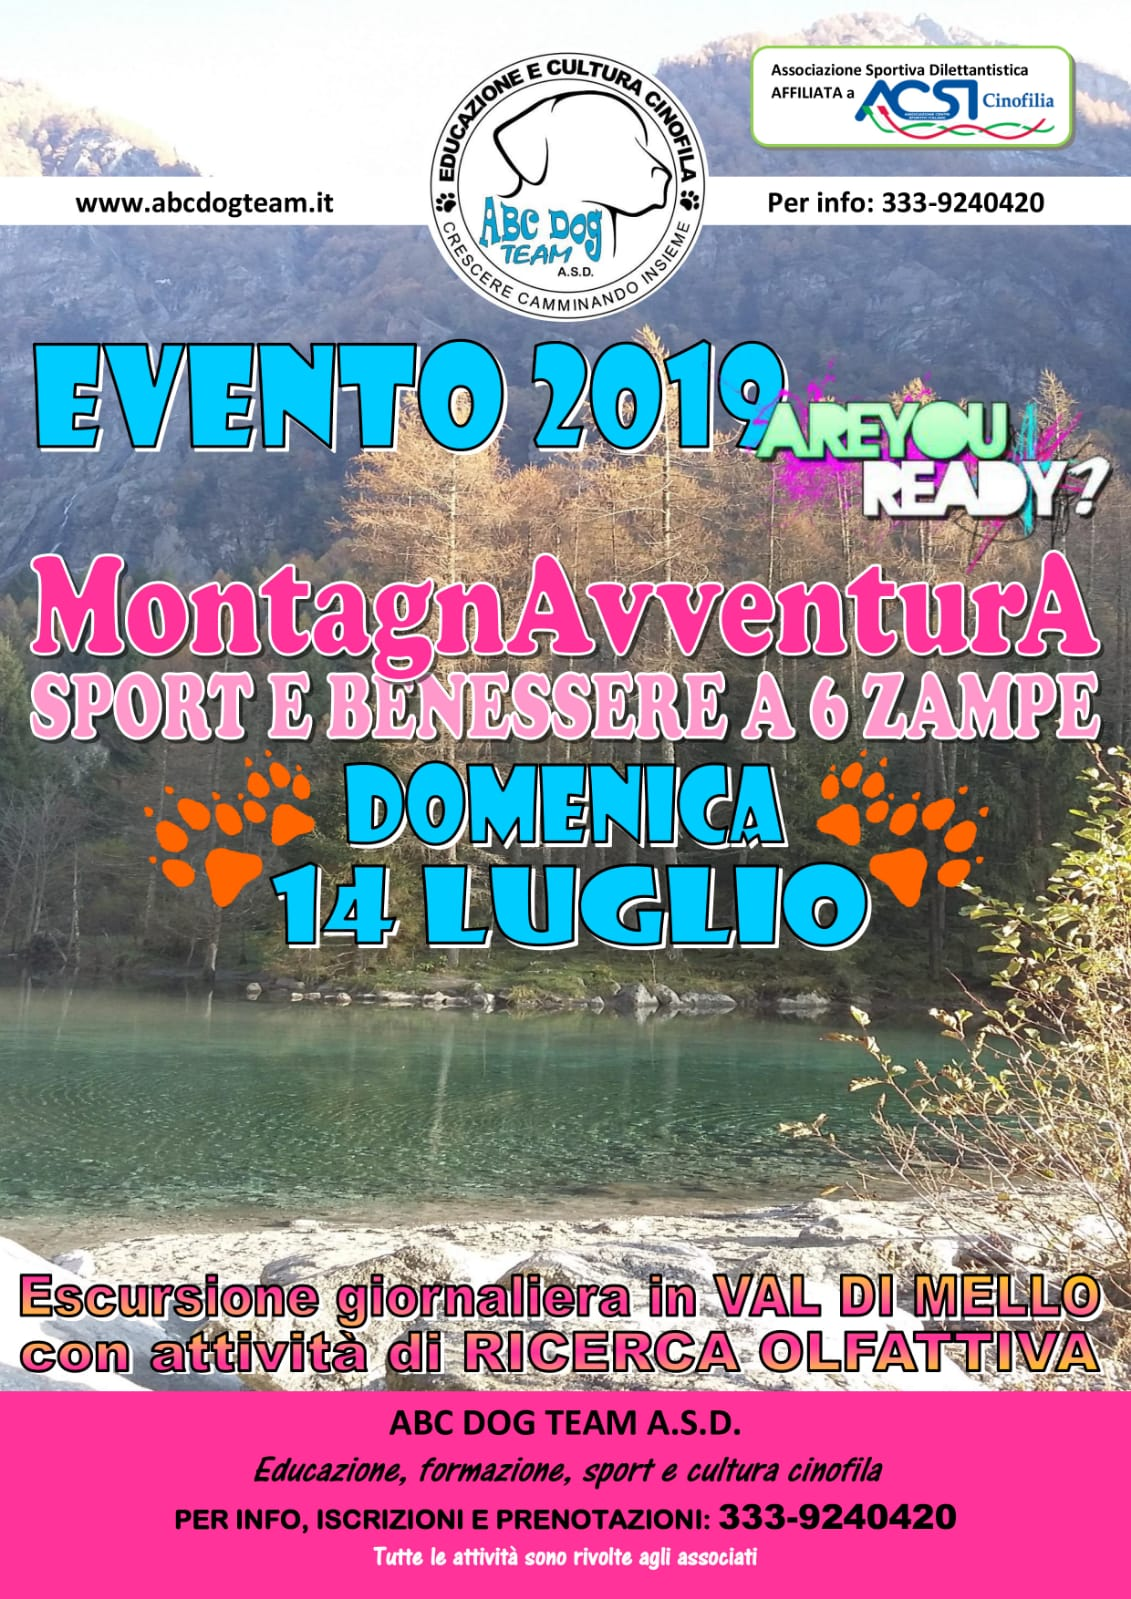 ABC DOG TEAM_Montagnavventura 2019